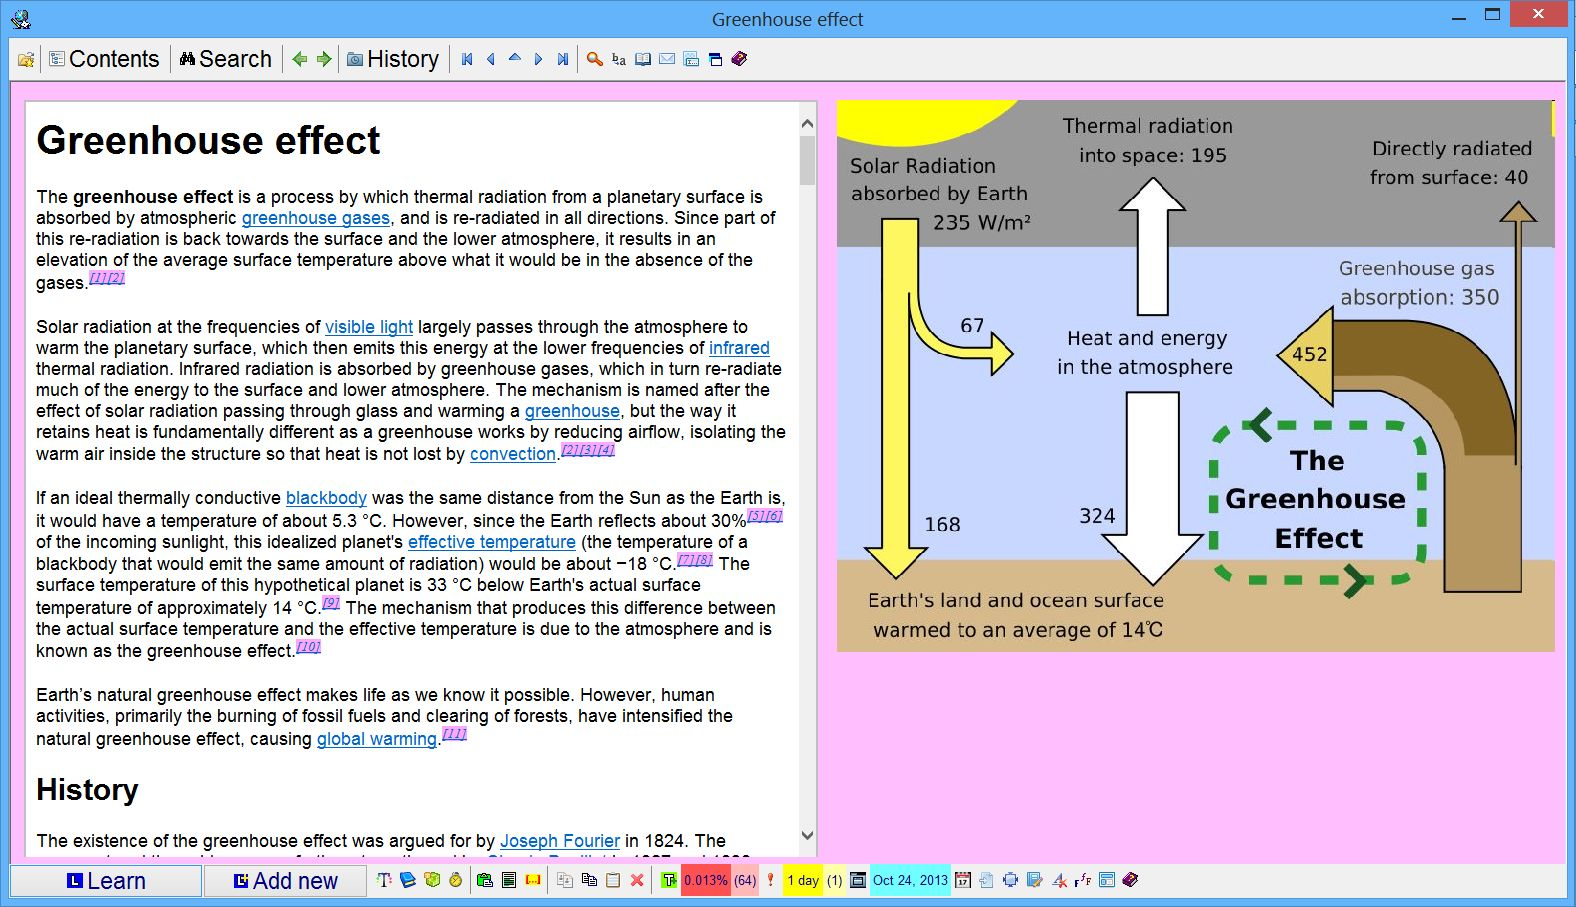 SuperMemo: A topic with an article about the greenhouse effect imported  from Wikipedia